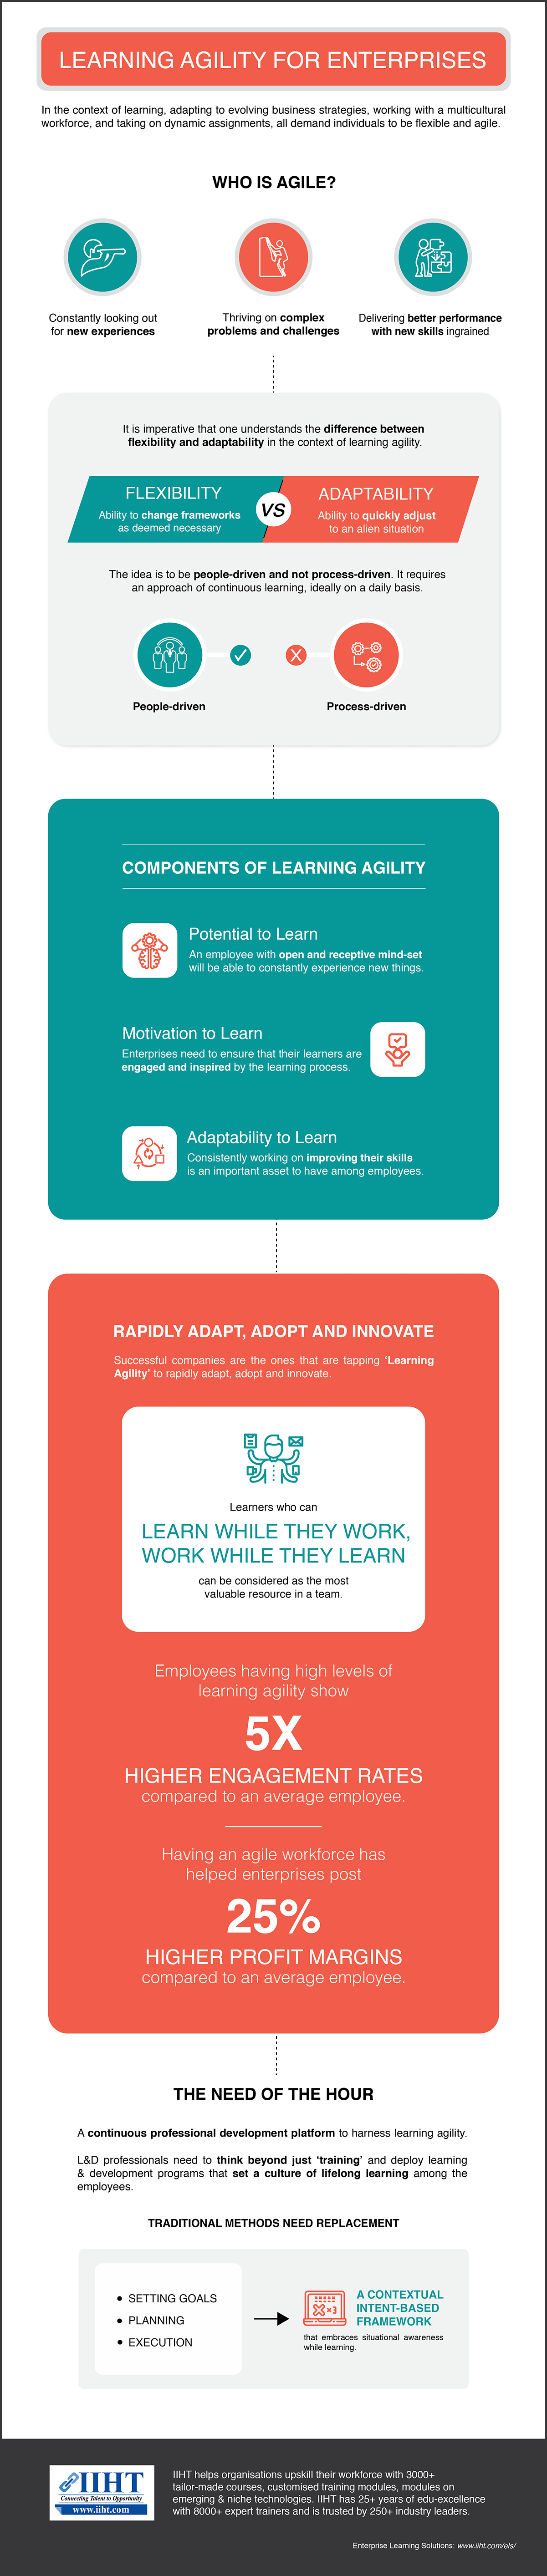 Learning Agility For Enterprises - Infographic